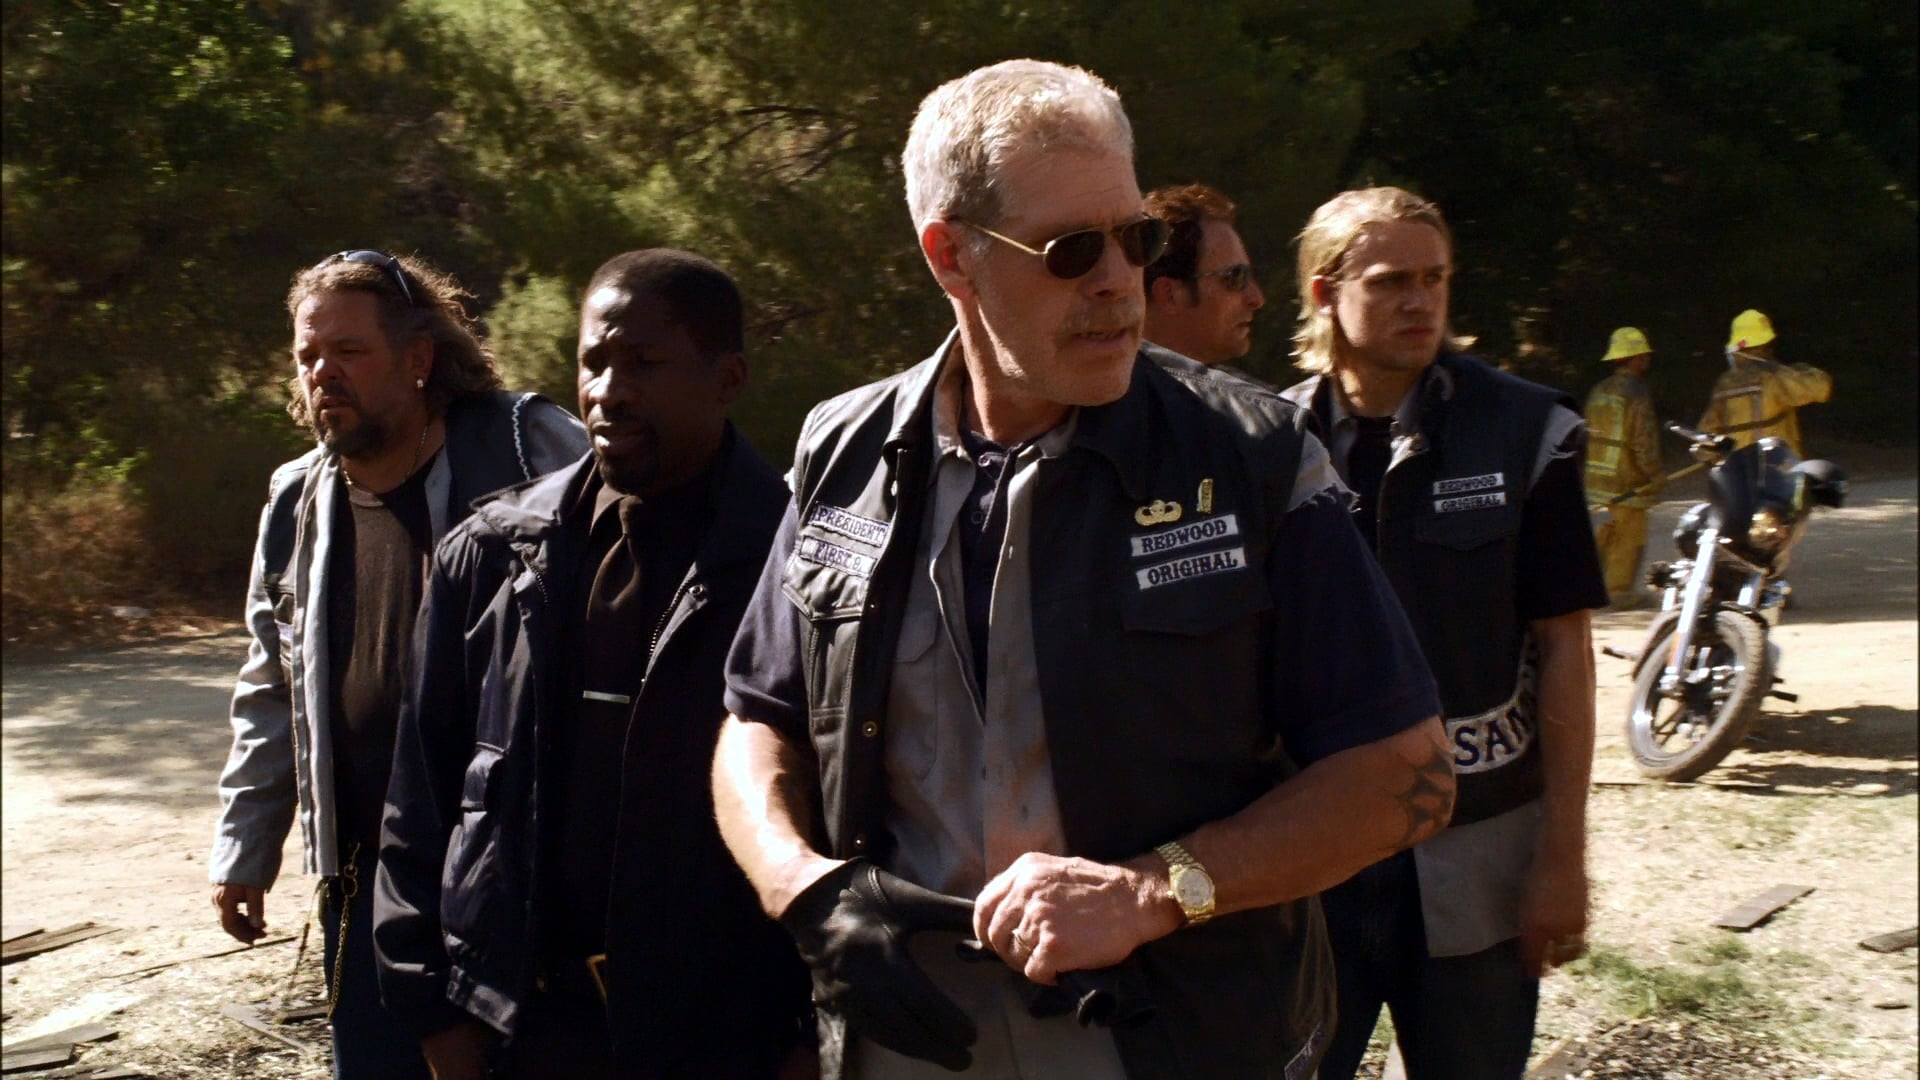 Sons Of Anarchy S05e08 720p Torrent - regereavalp